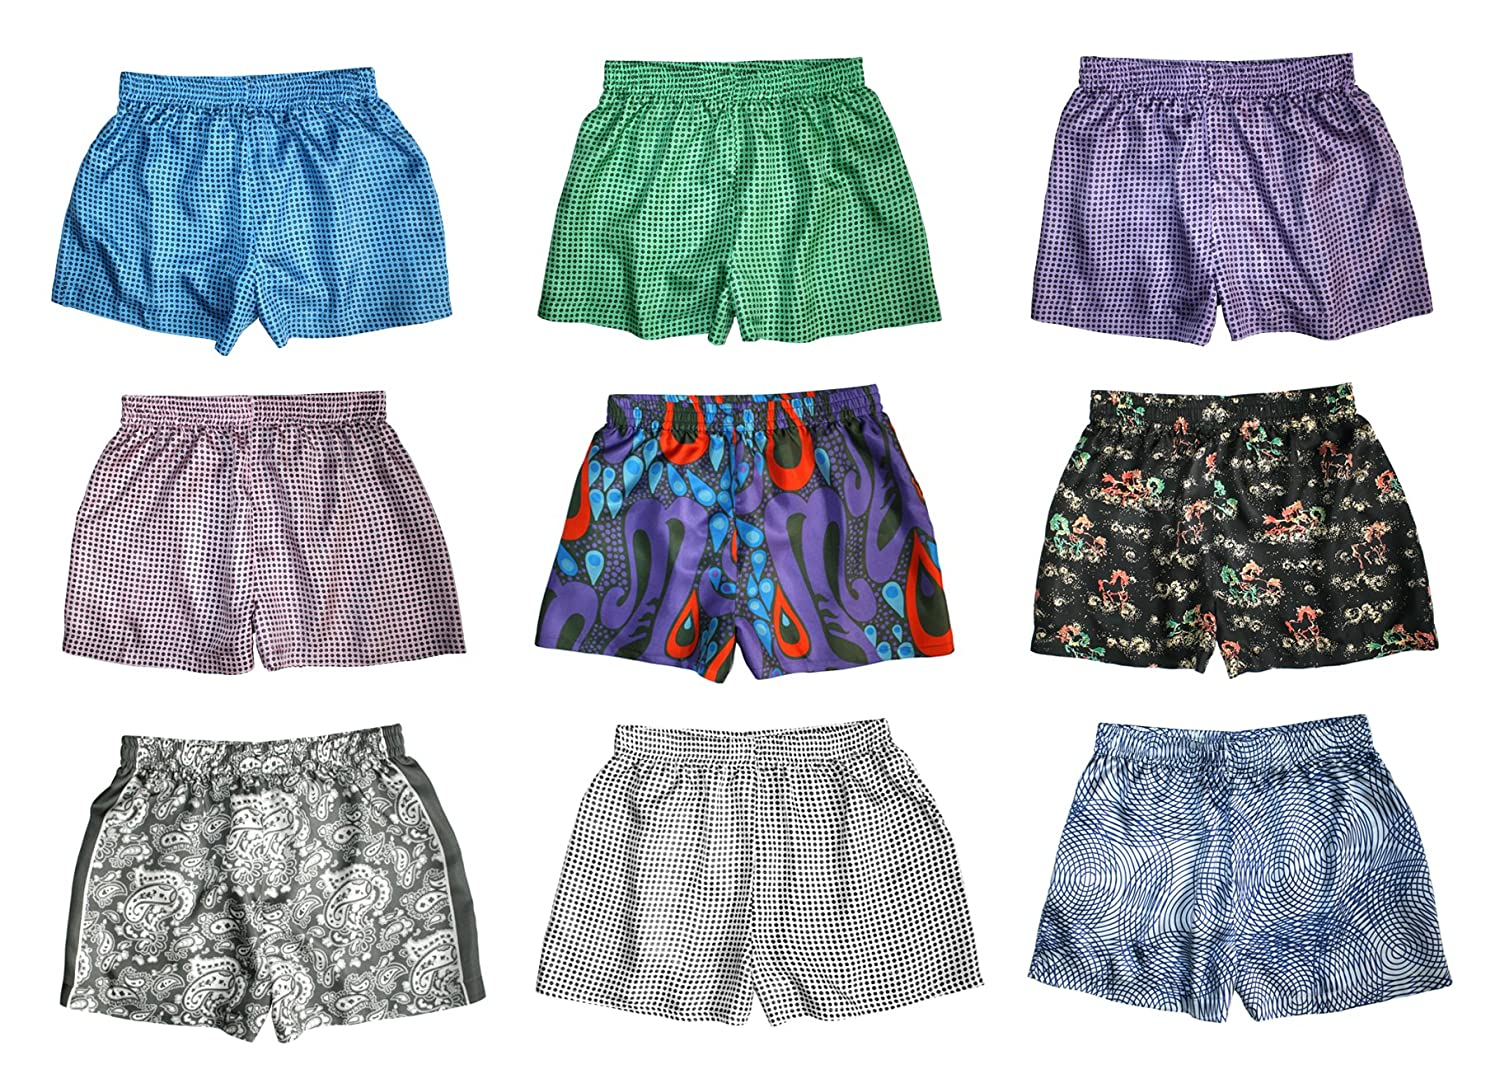 Silk Boxer Shorts for Women - Assorted 3-Pack - XS-XXL - Silk Boxers Set